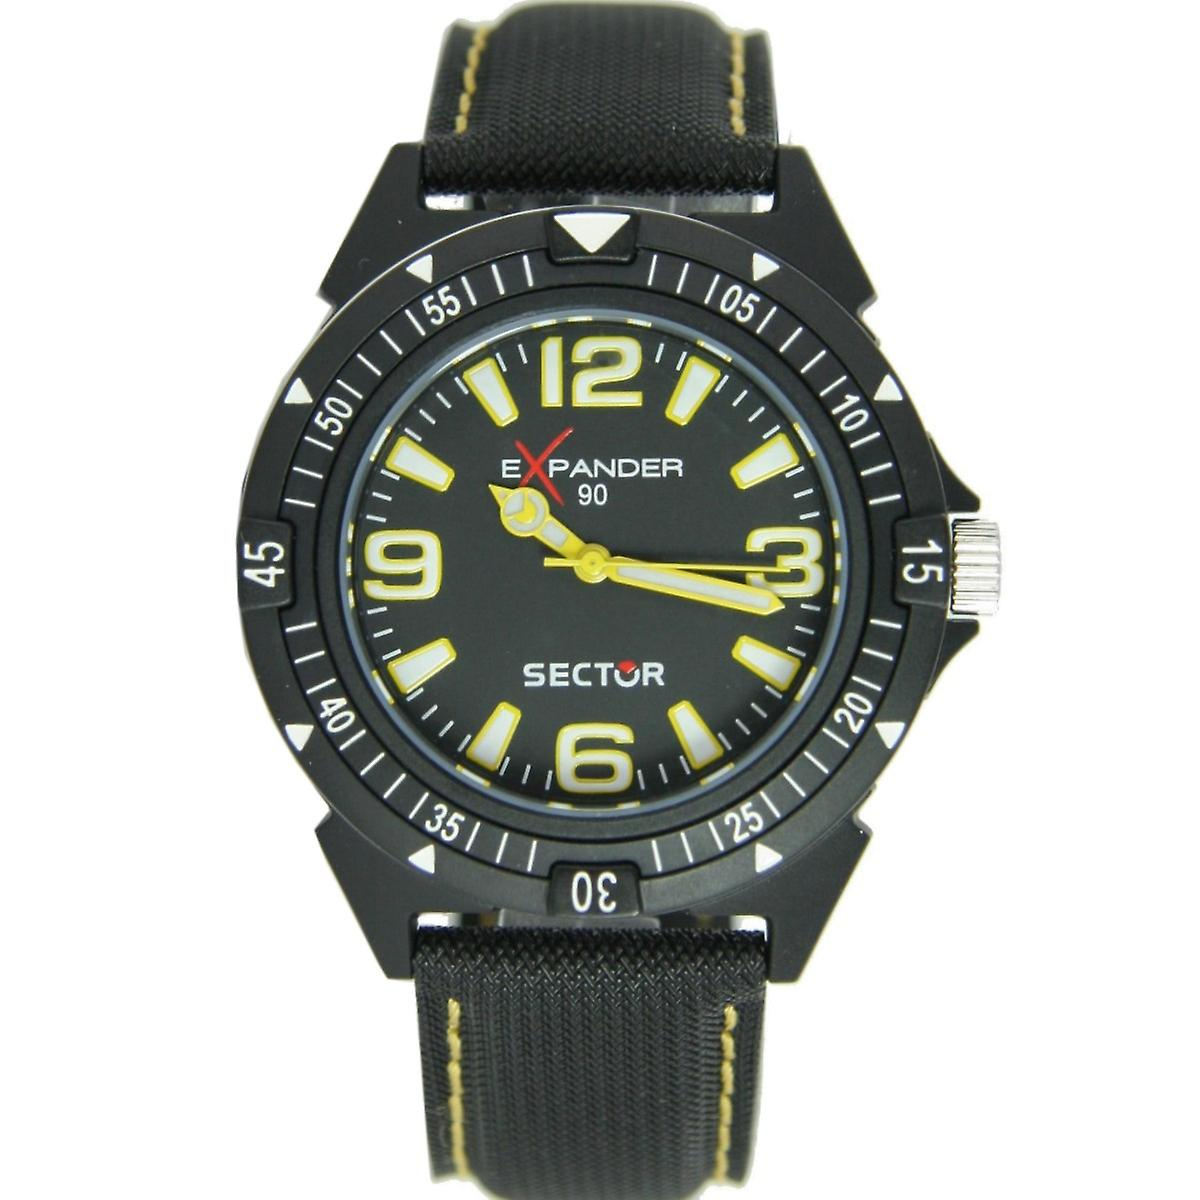 Sector men's watch wristwatch Expander 90 - R3251197004